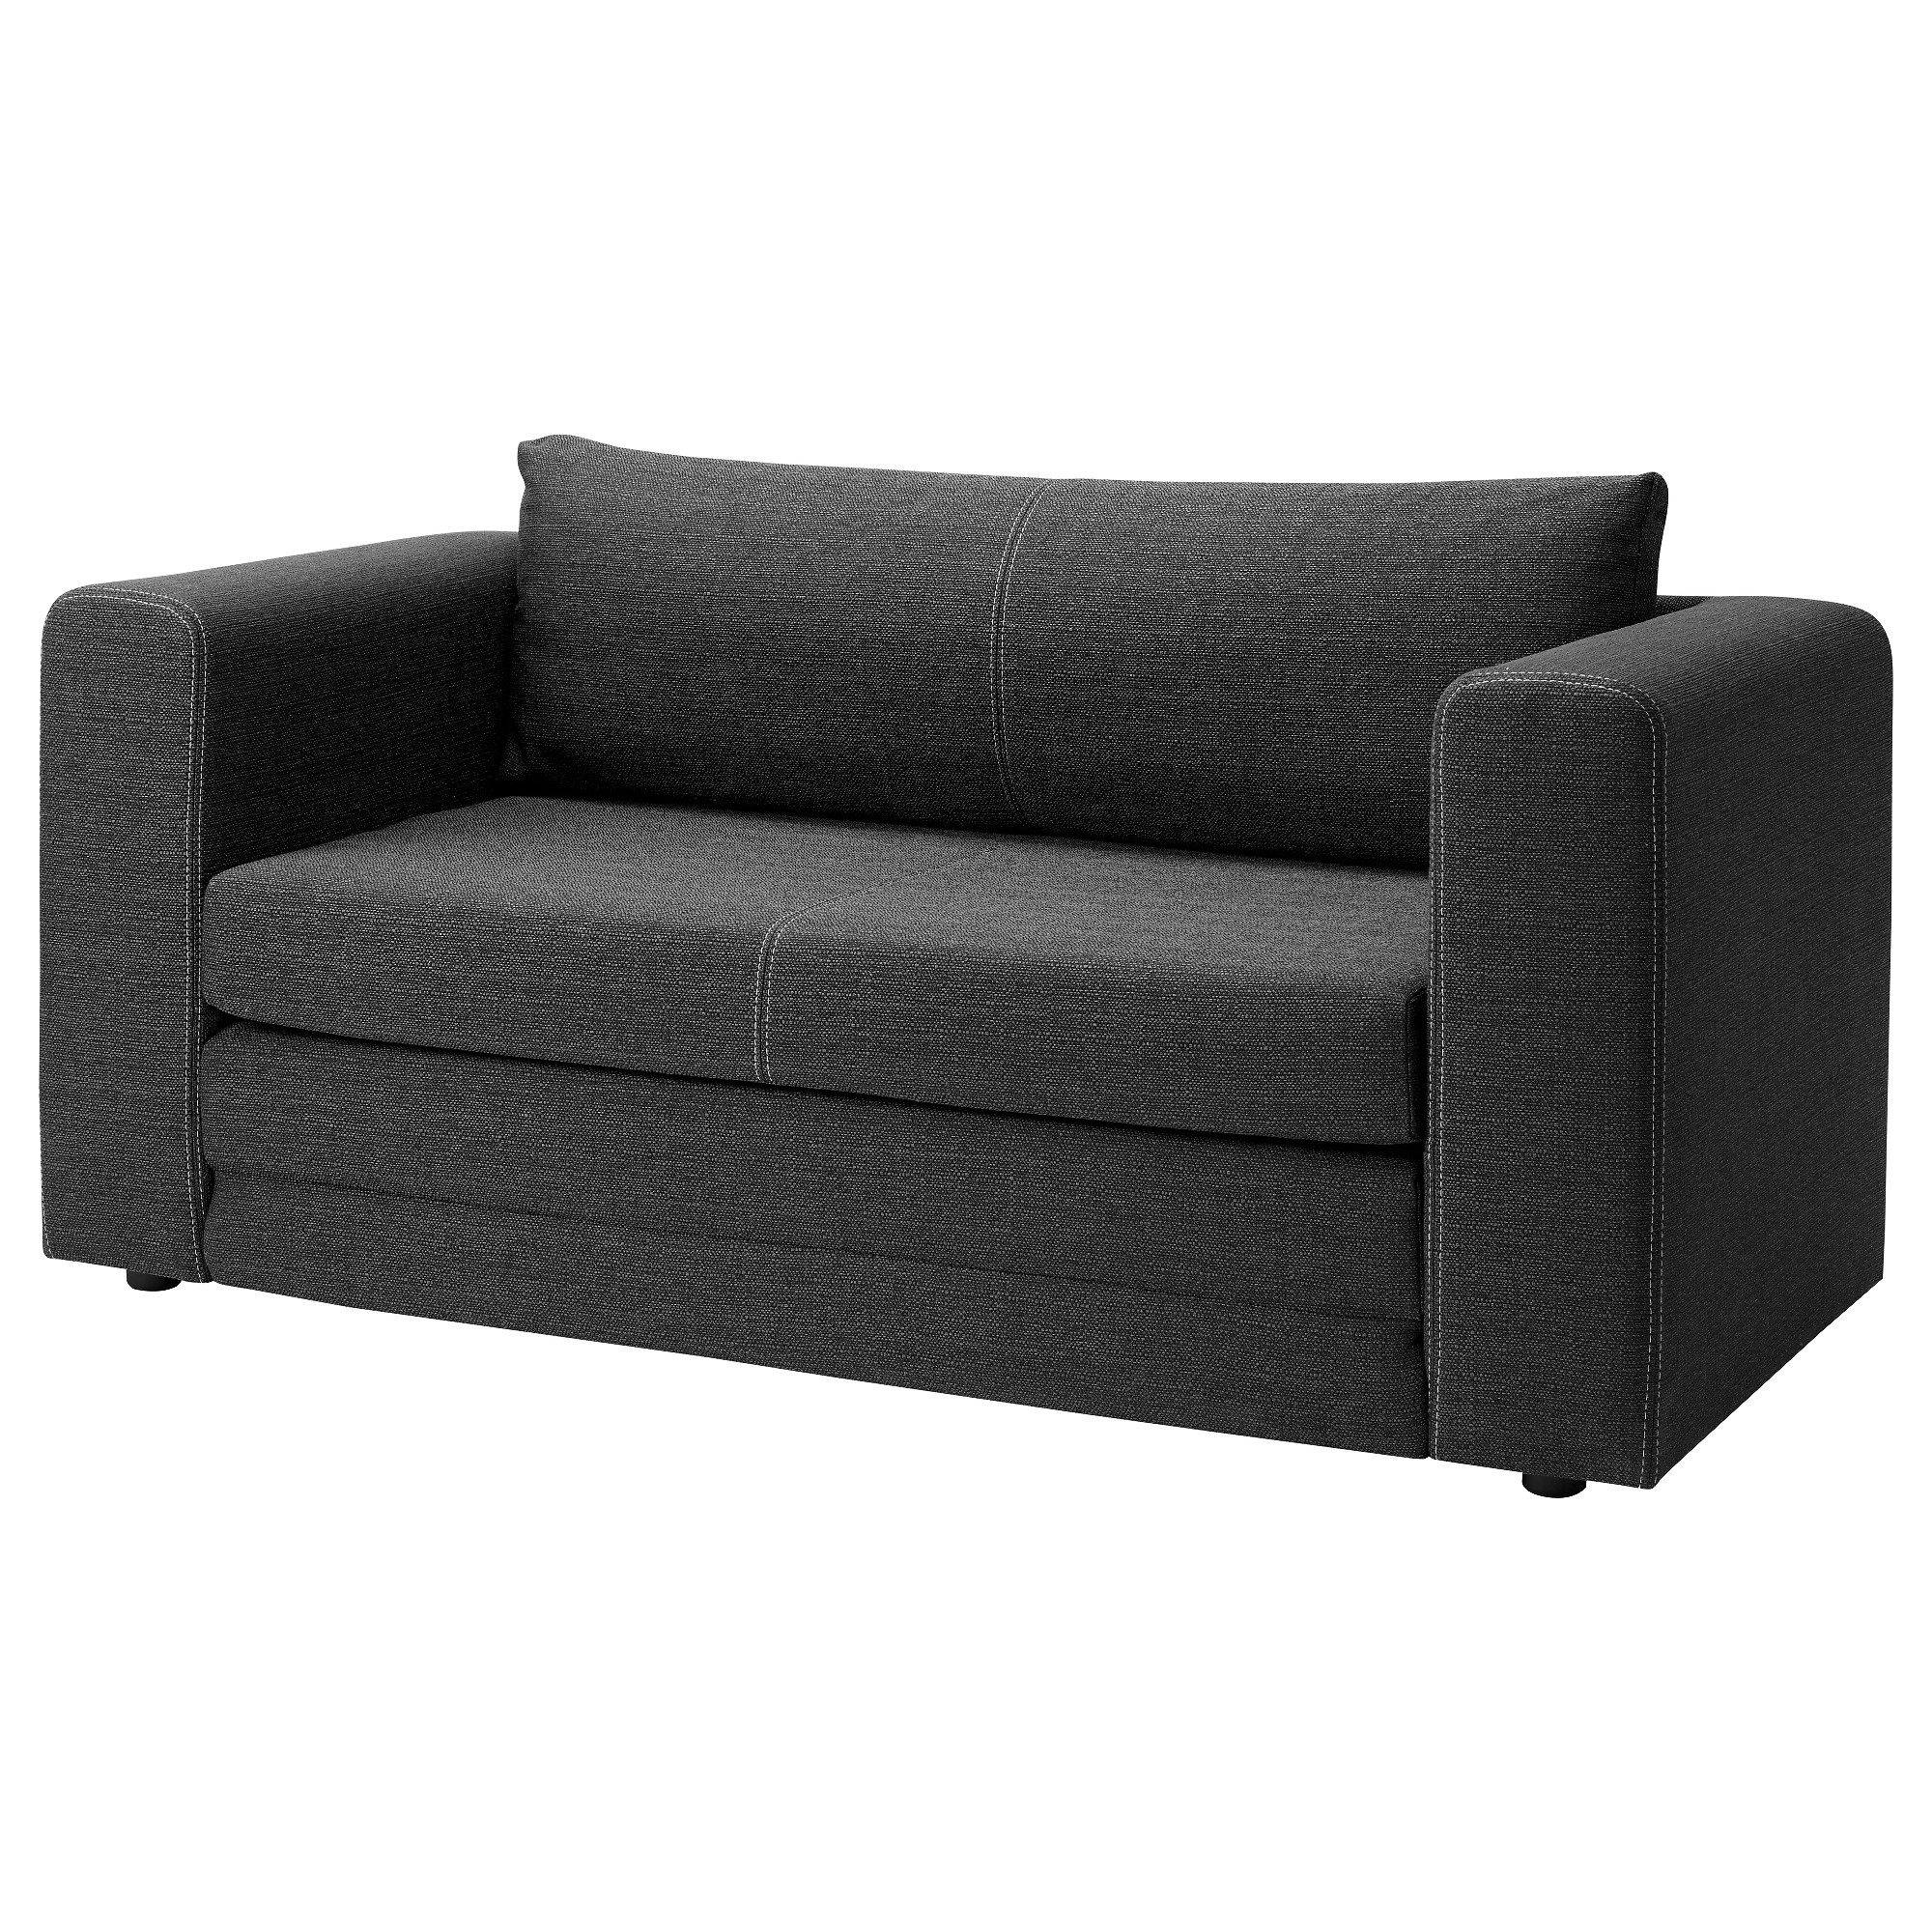 schlafsofa ikea mit bettkasten. Black Bedroom Furniture Sets. Home Design Ideas